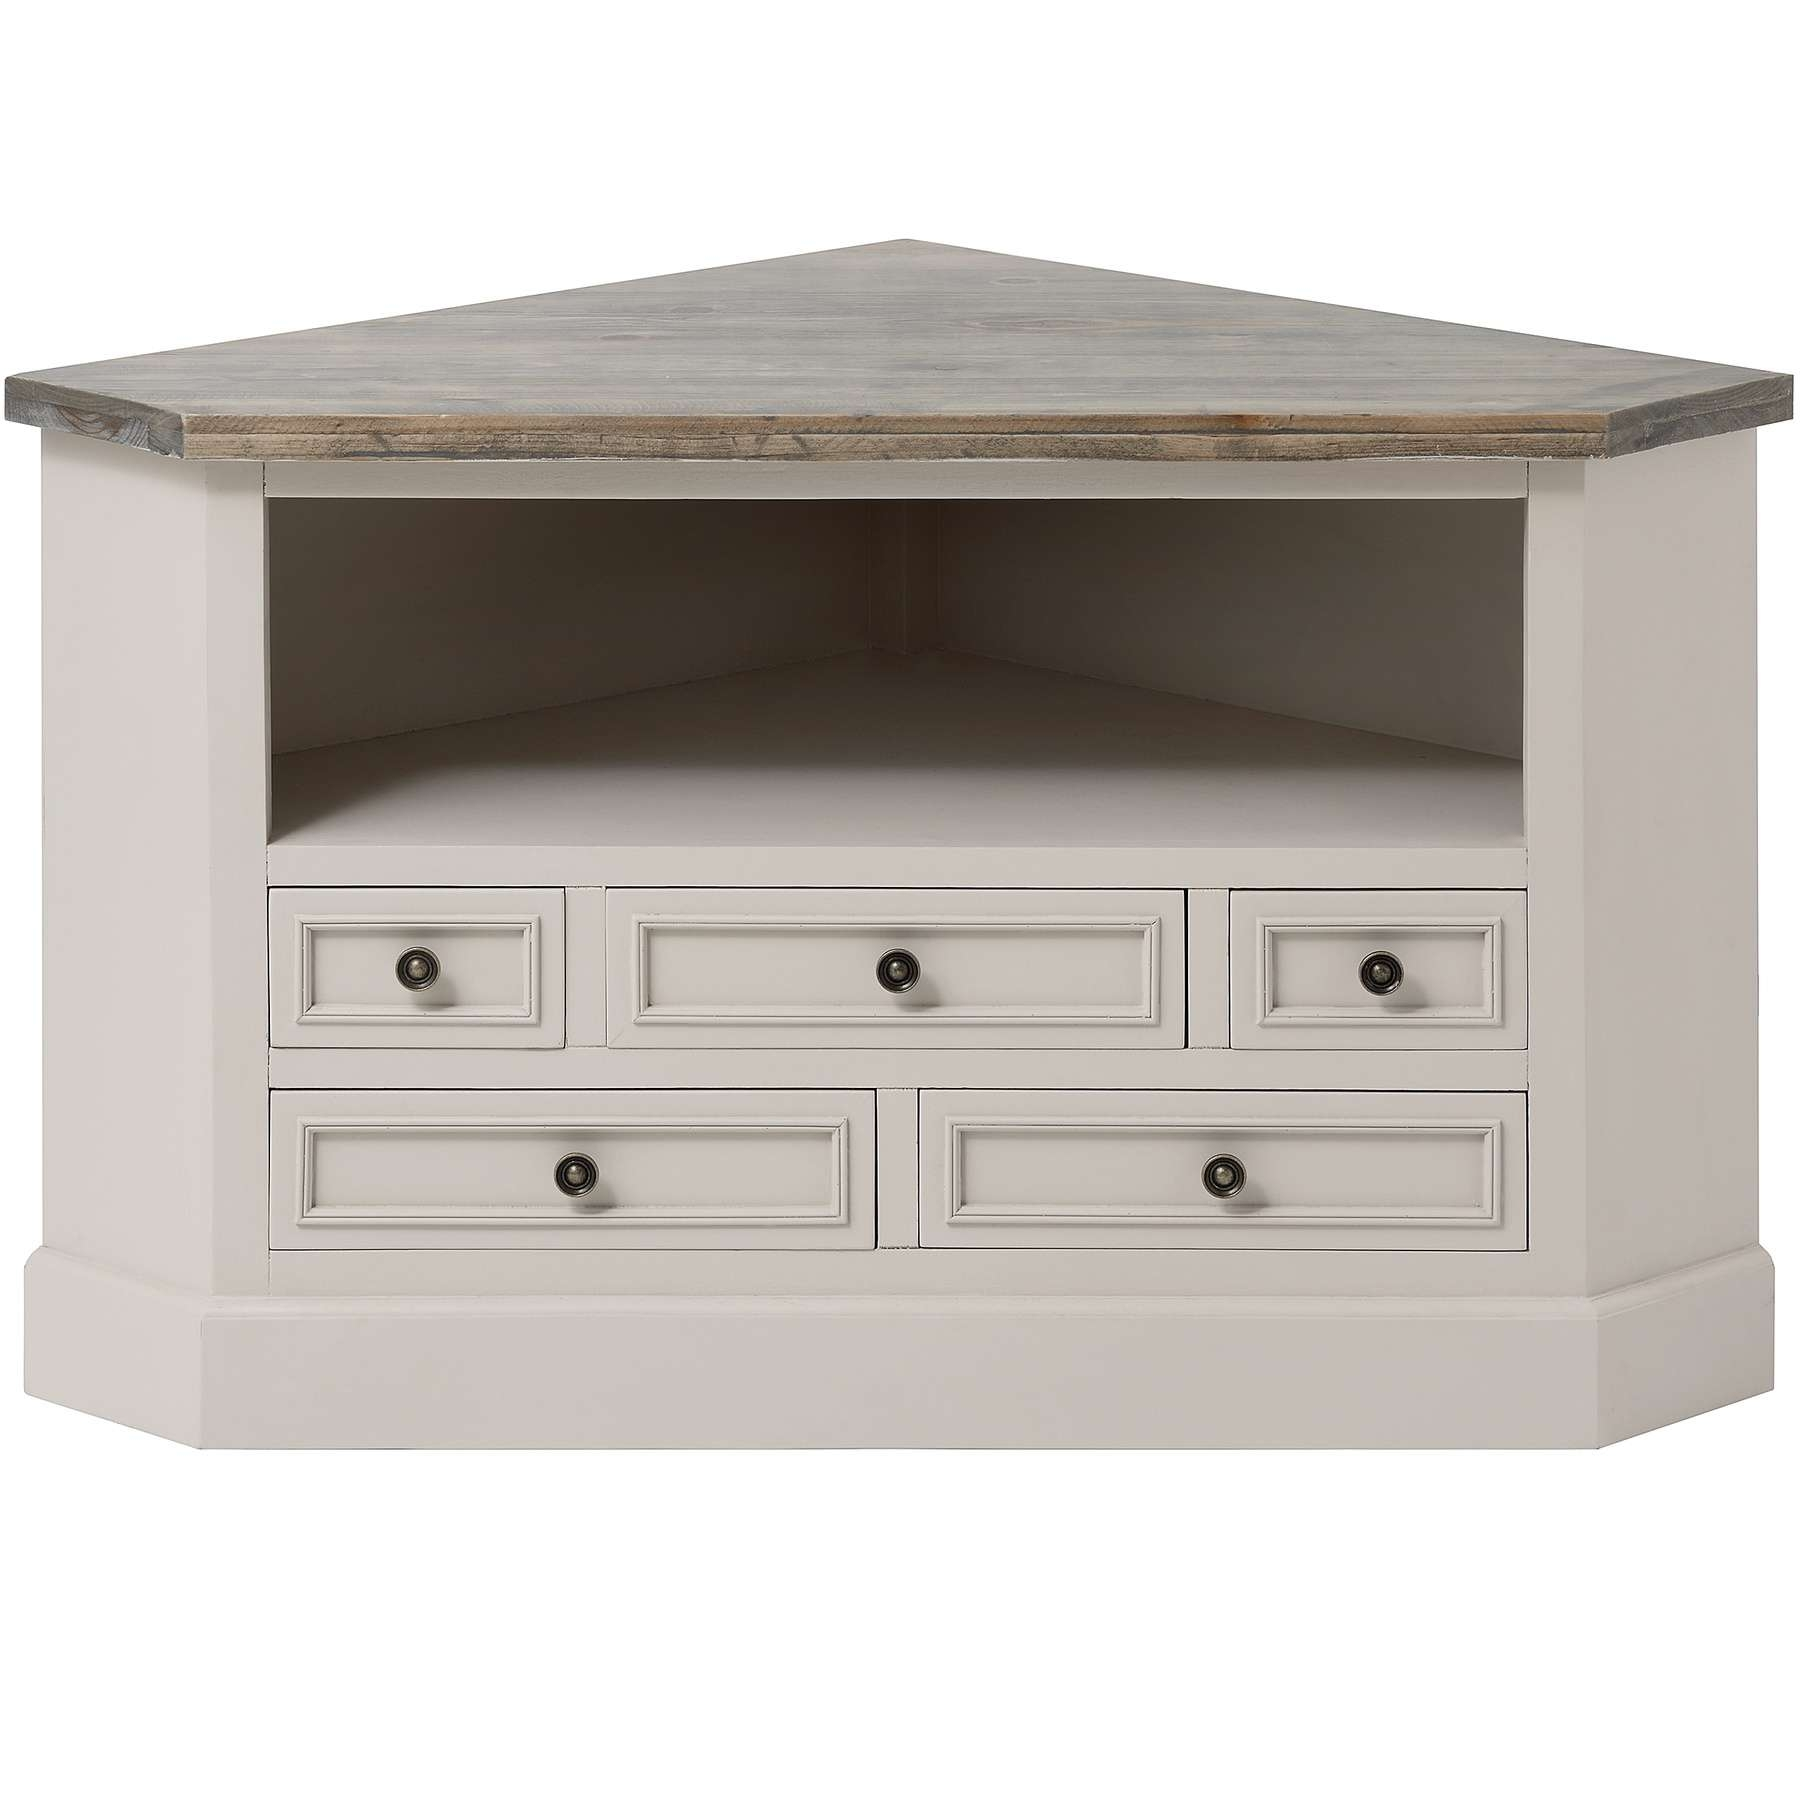 Rustic White Painted Walnut Wood Corner Tv Stand With Drawers Of For Wooden Corner Tv Cabinets (View 20 of 20)